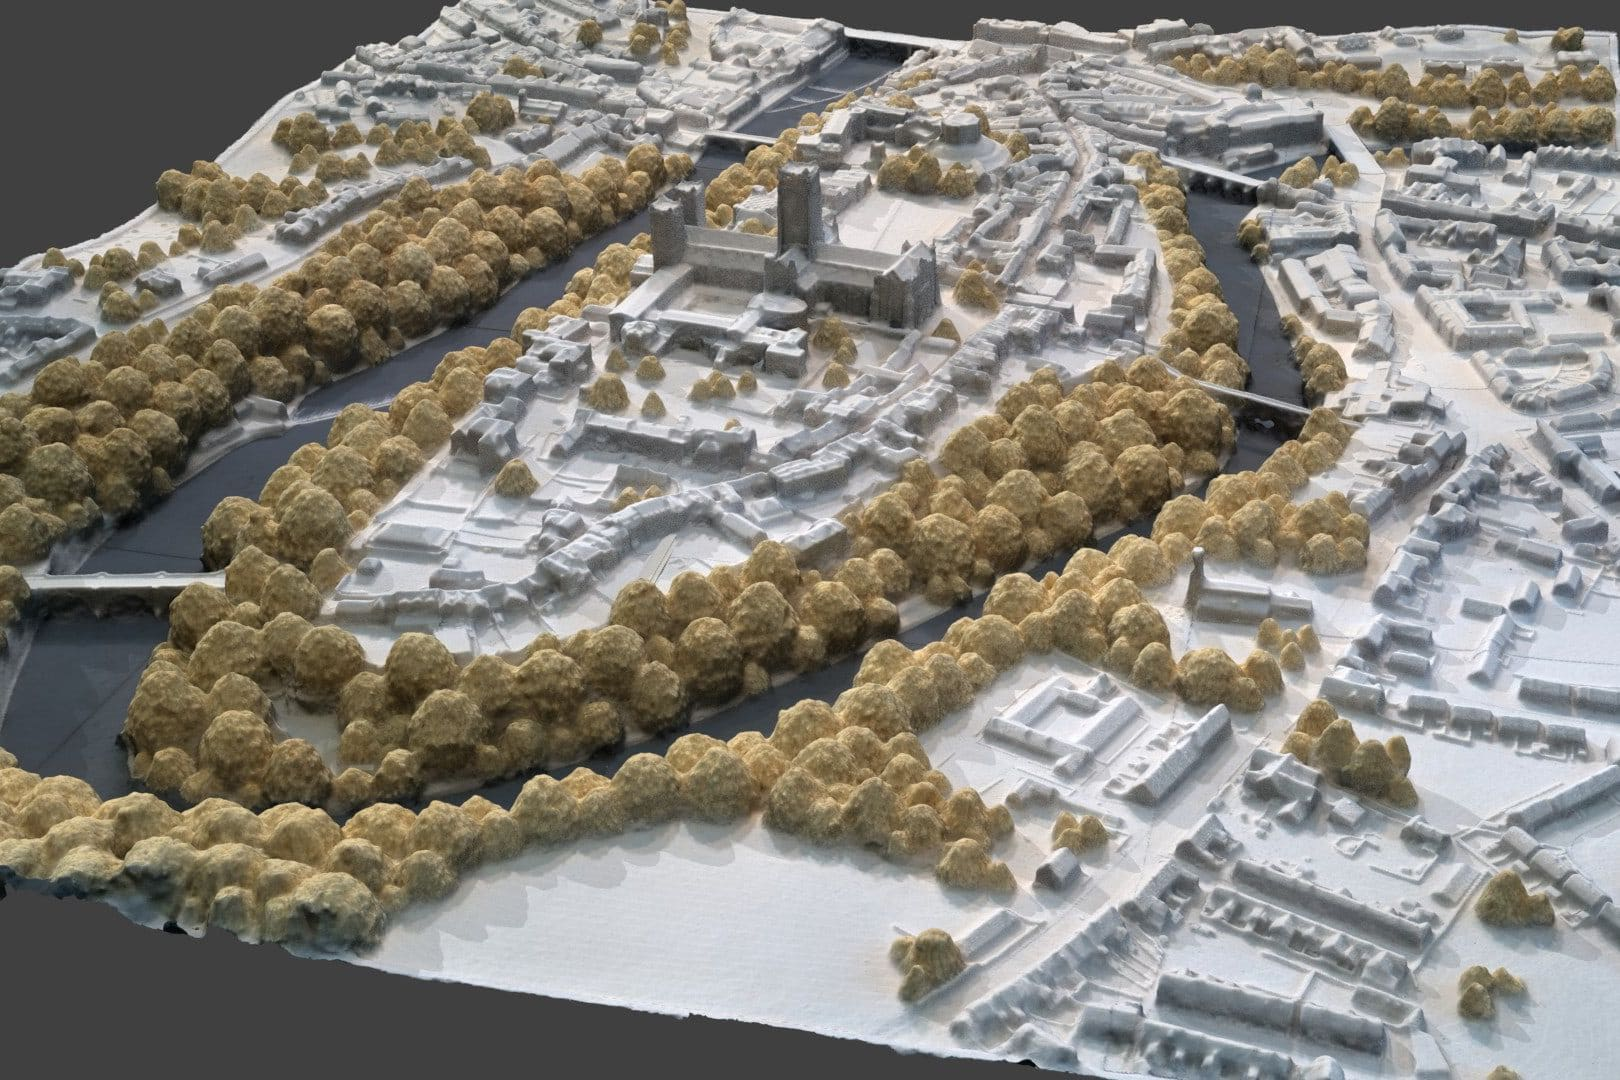 Durham 3D: how we created a 1,000 image photogrammetry model